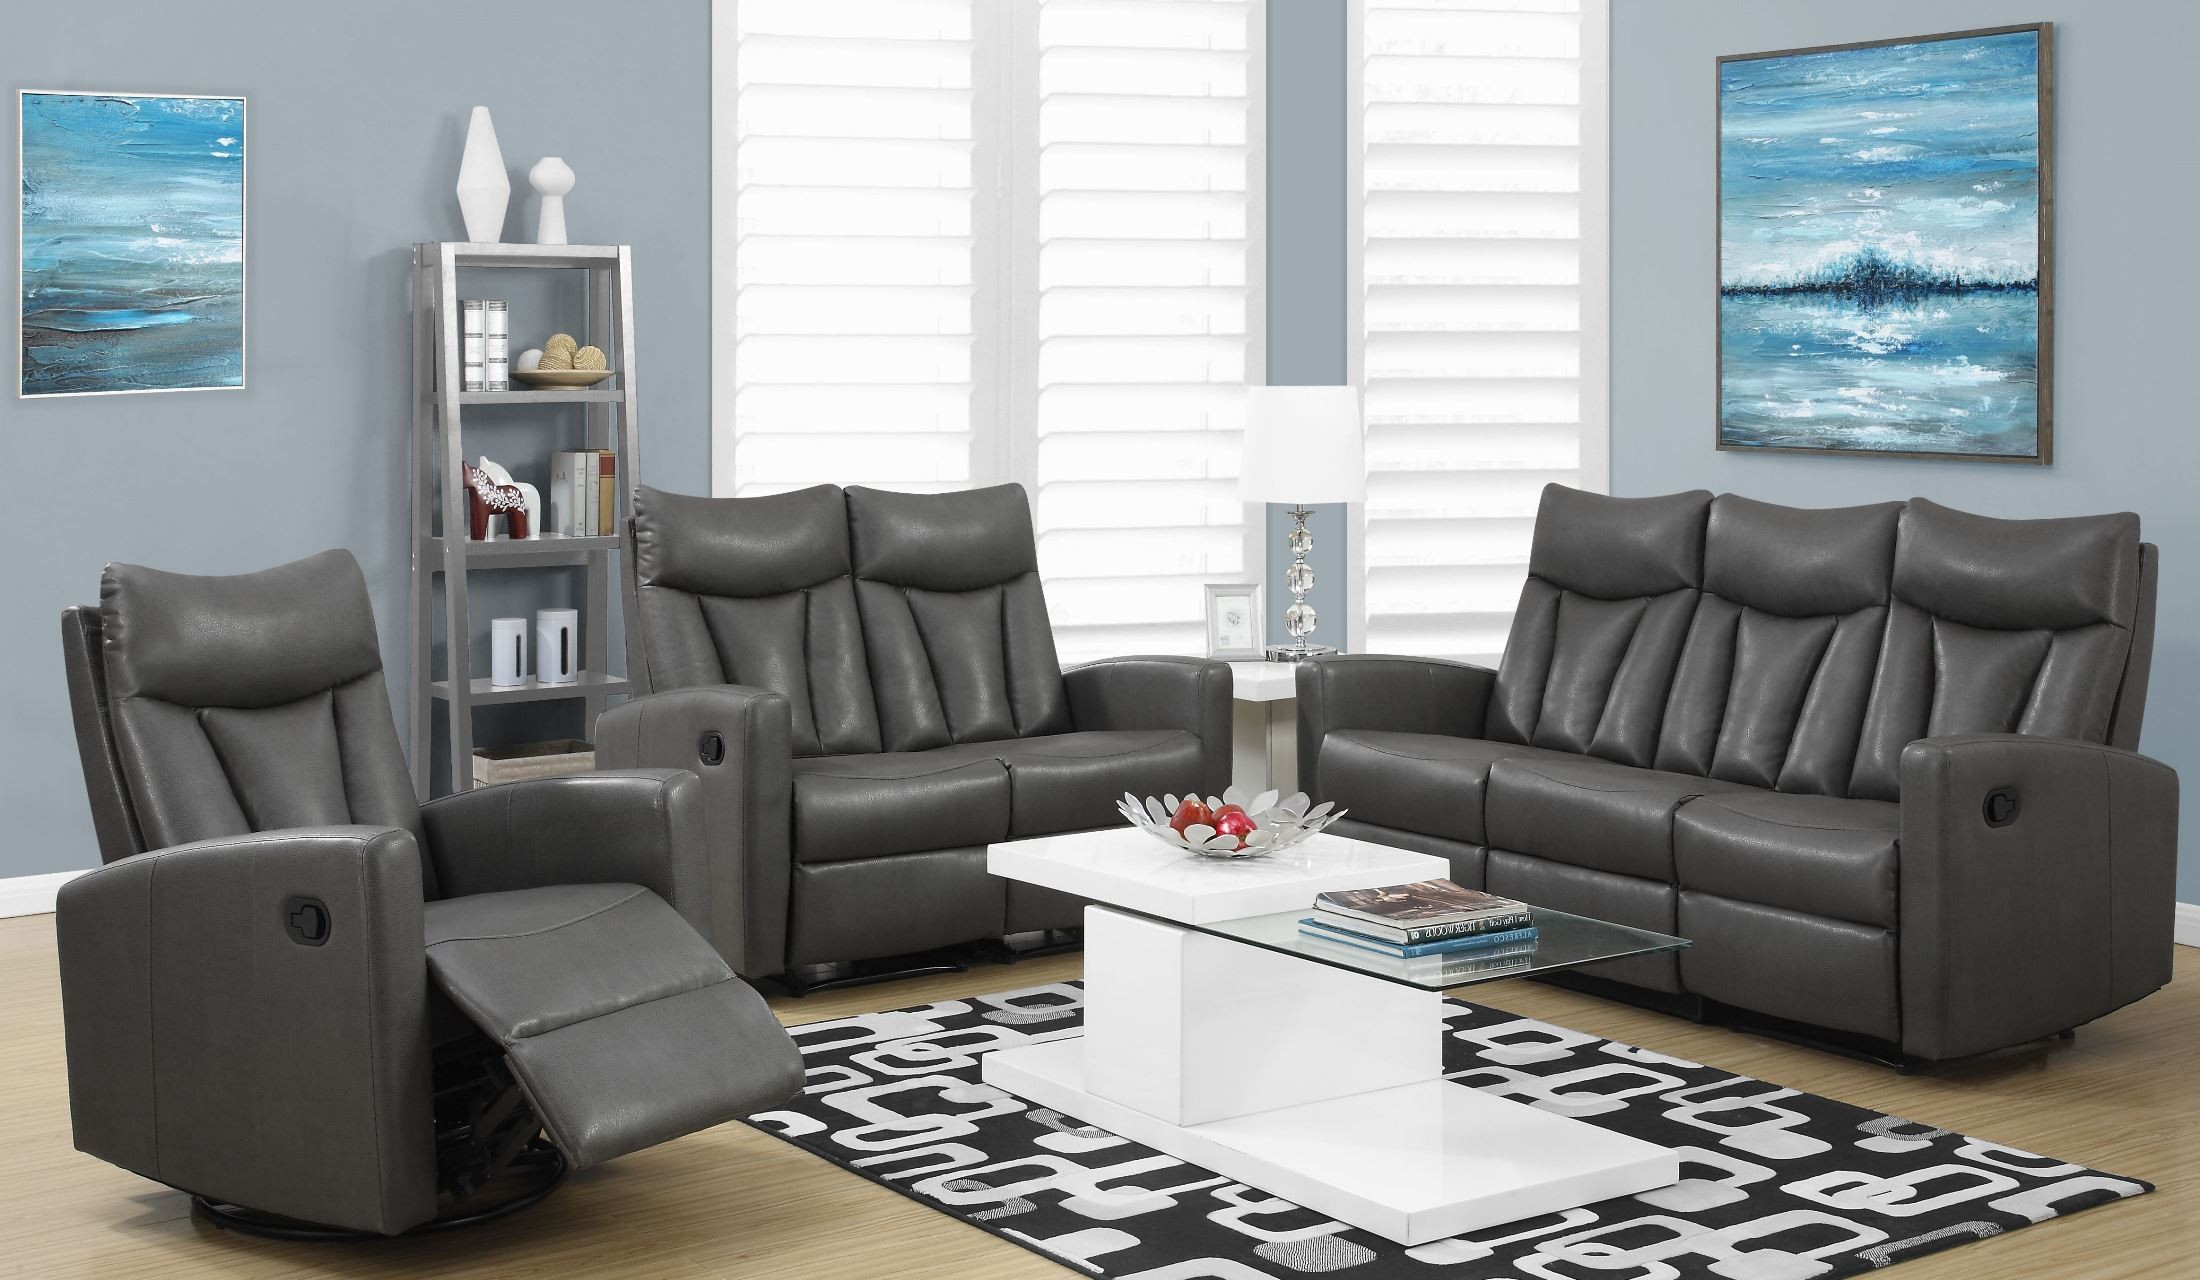 87gy 3 Charcoal Gray Bonded Leather Reclining Living Room Set 87gy 3 Monarch